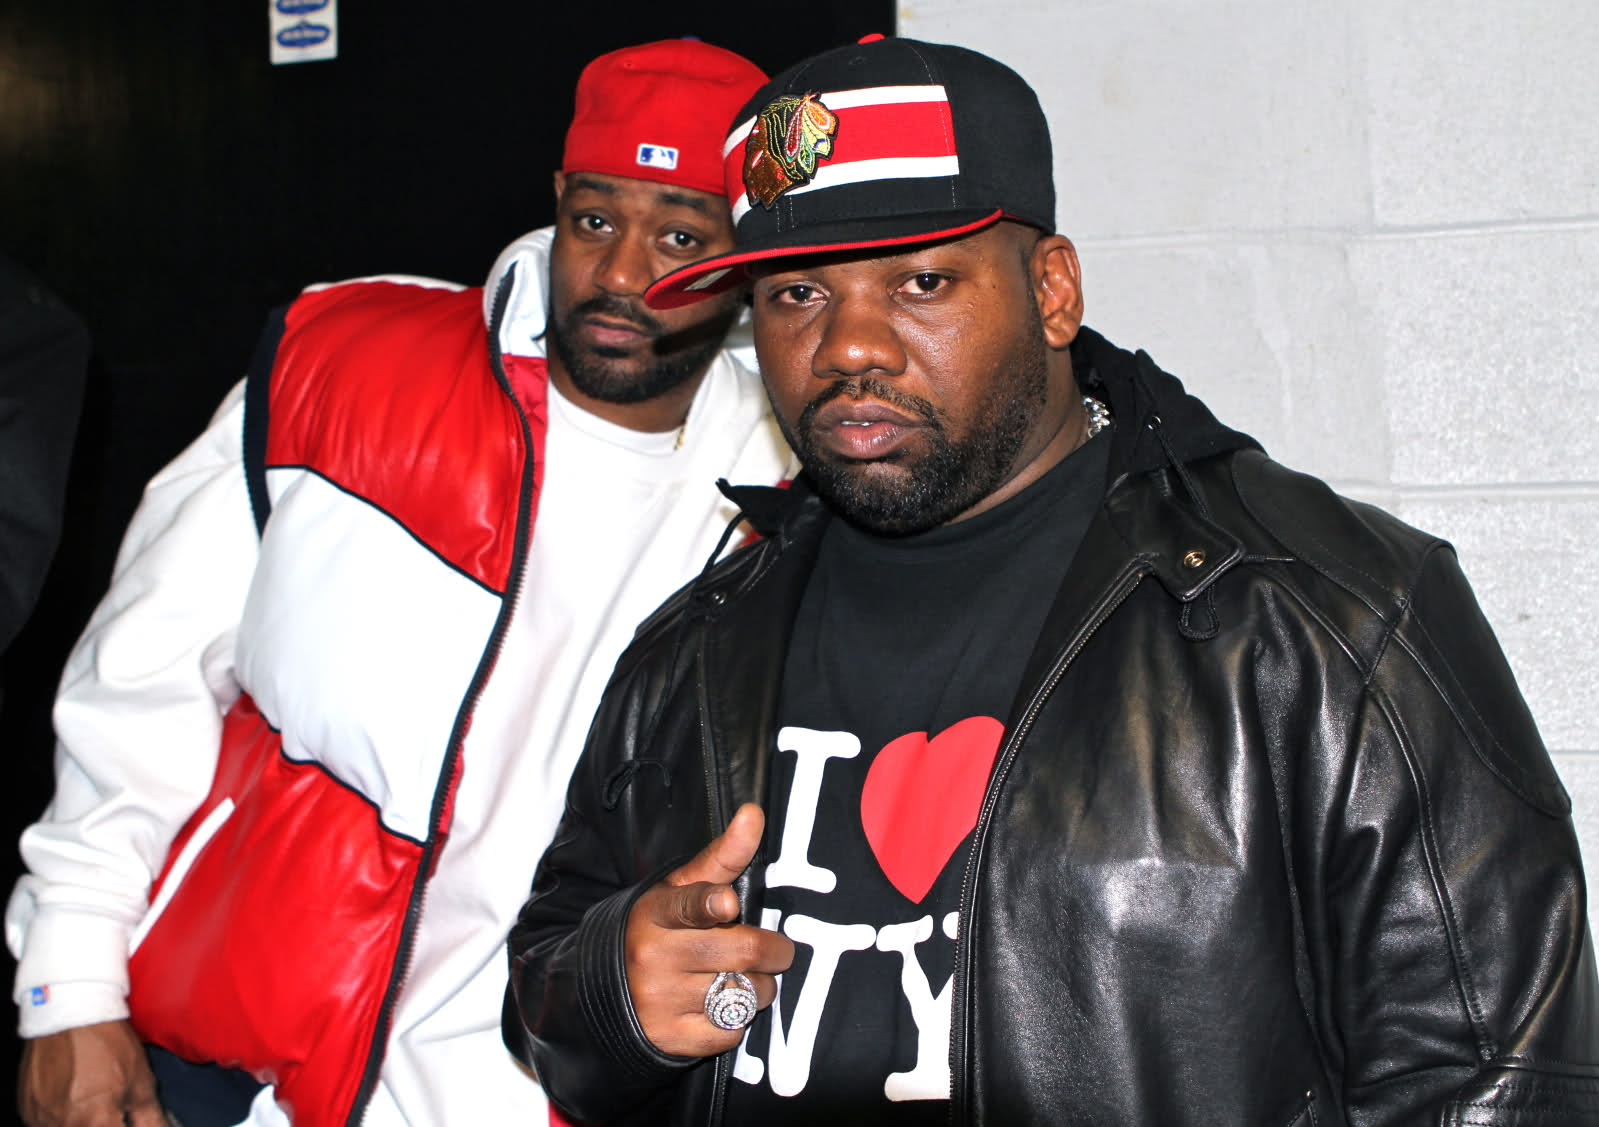 raekwon-ghostface-killah-wu-wednesday-0430-1